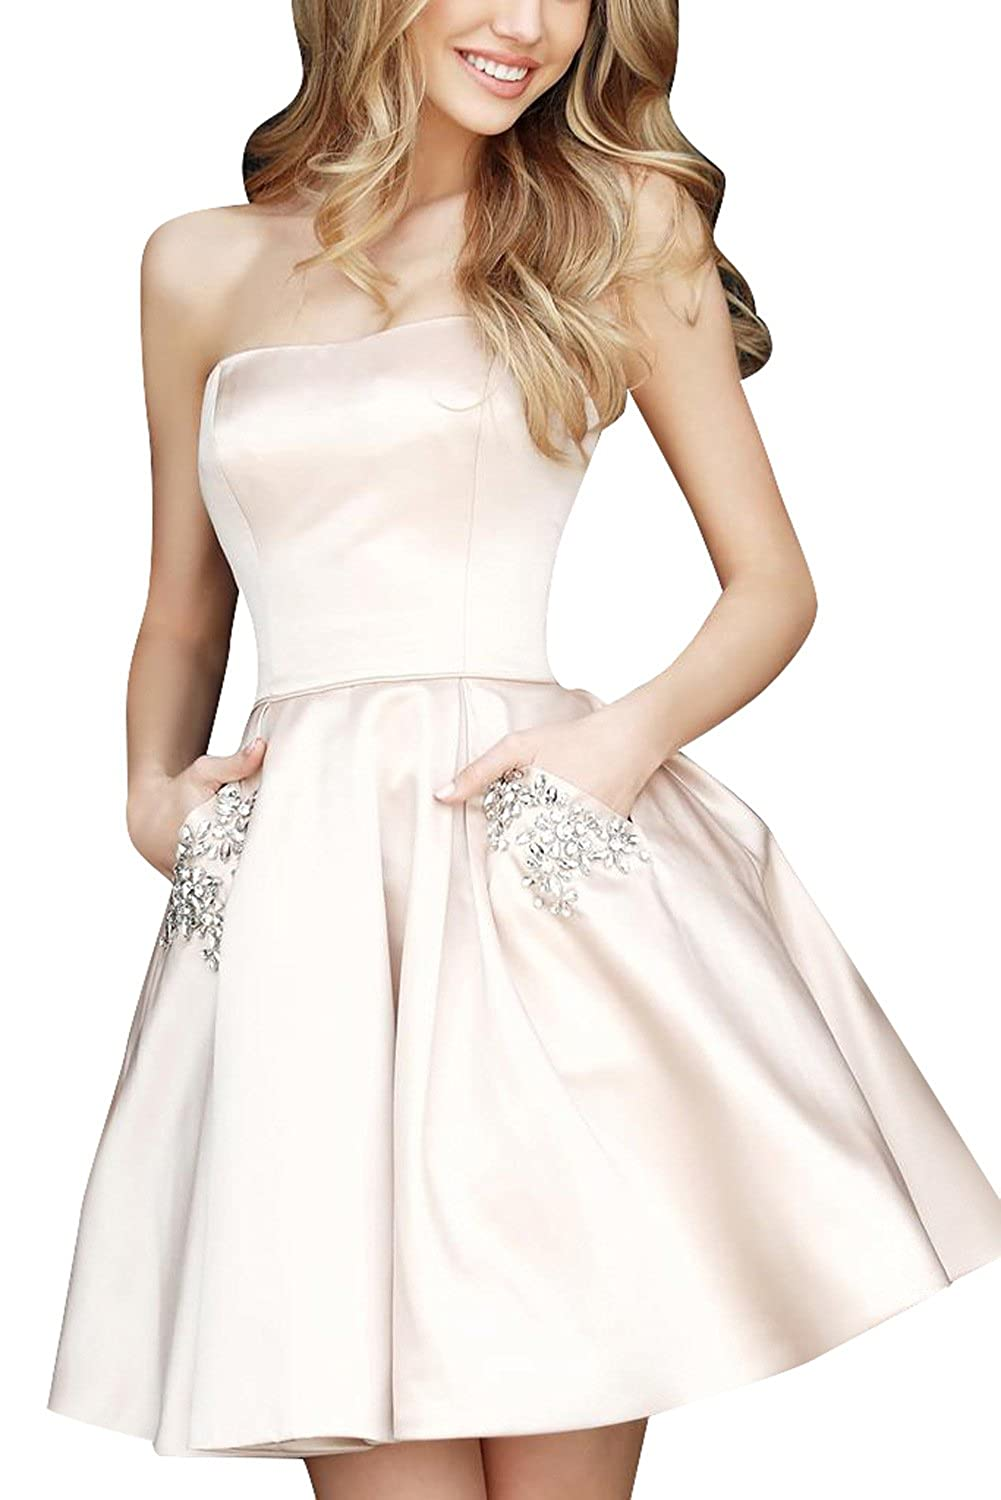 hot product lowest discount website for discount Weddder Beaded Strapless Prom Dresses Pockets Short Satin A ...